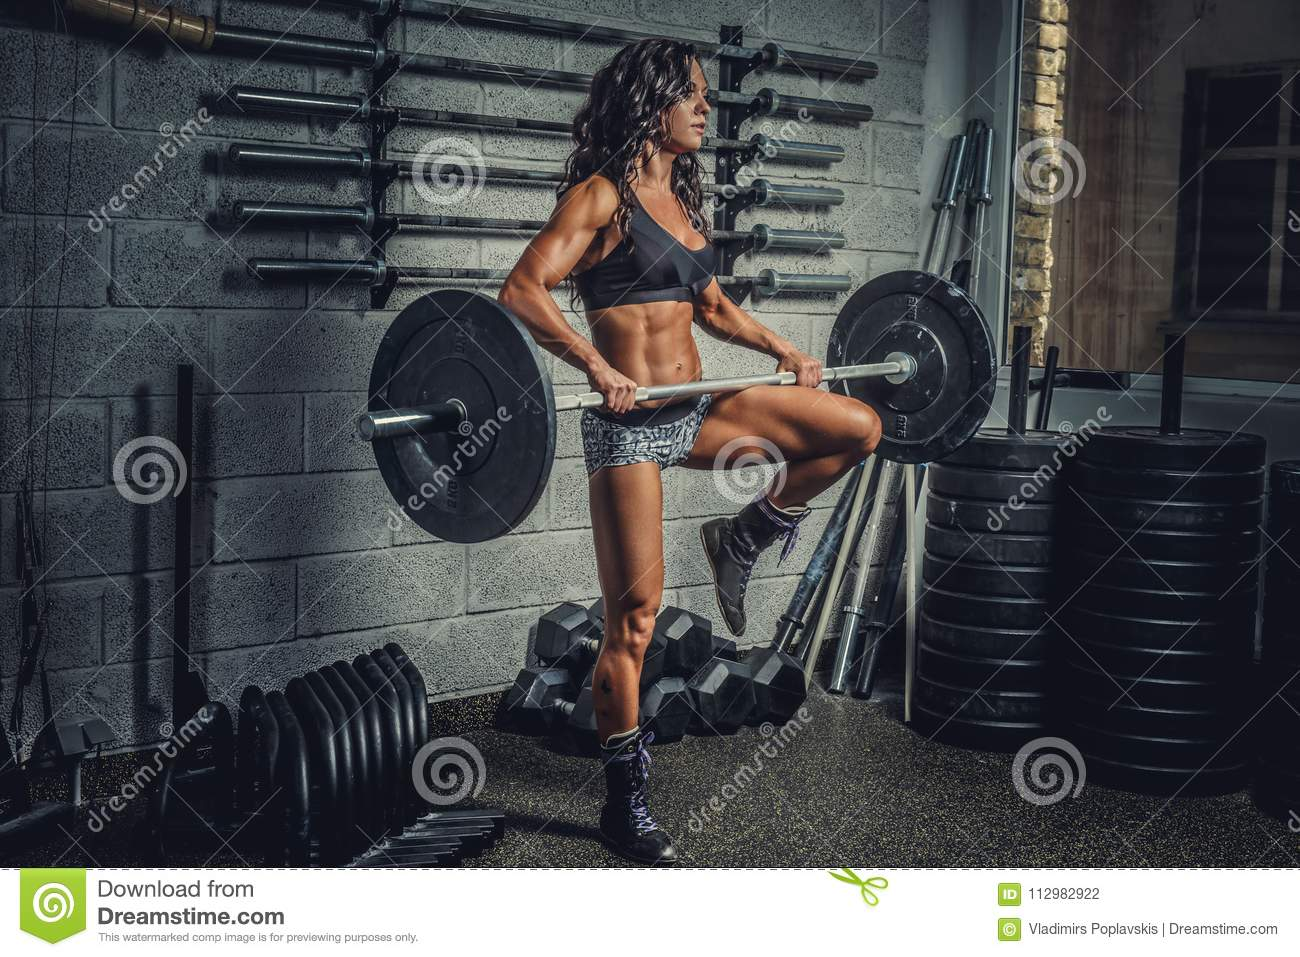 Female holding barbell in a gym club.